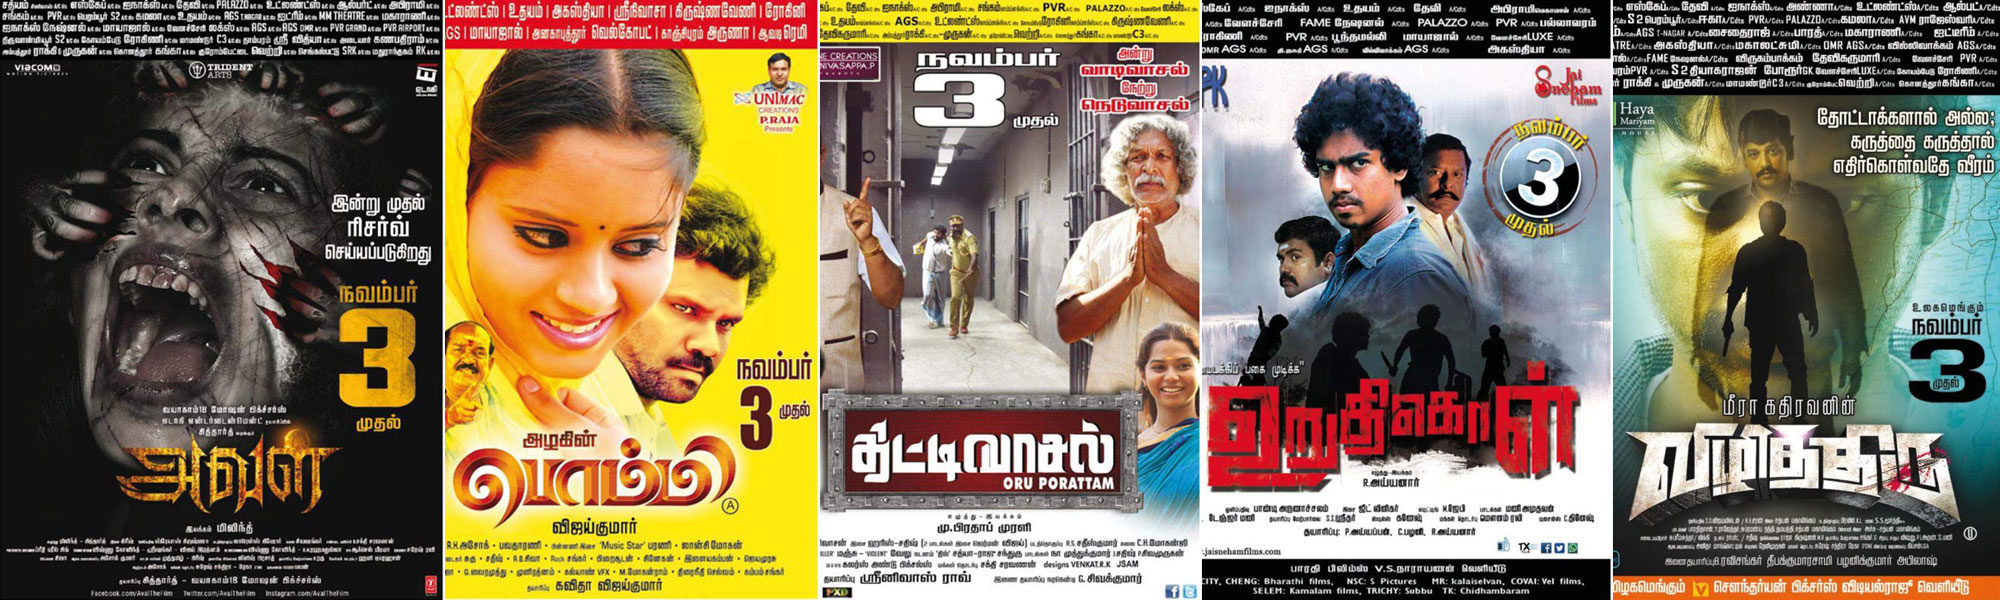 november-5-release-movies